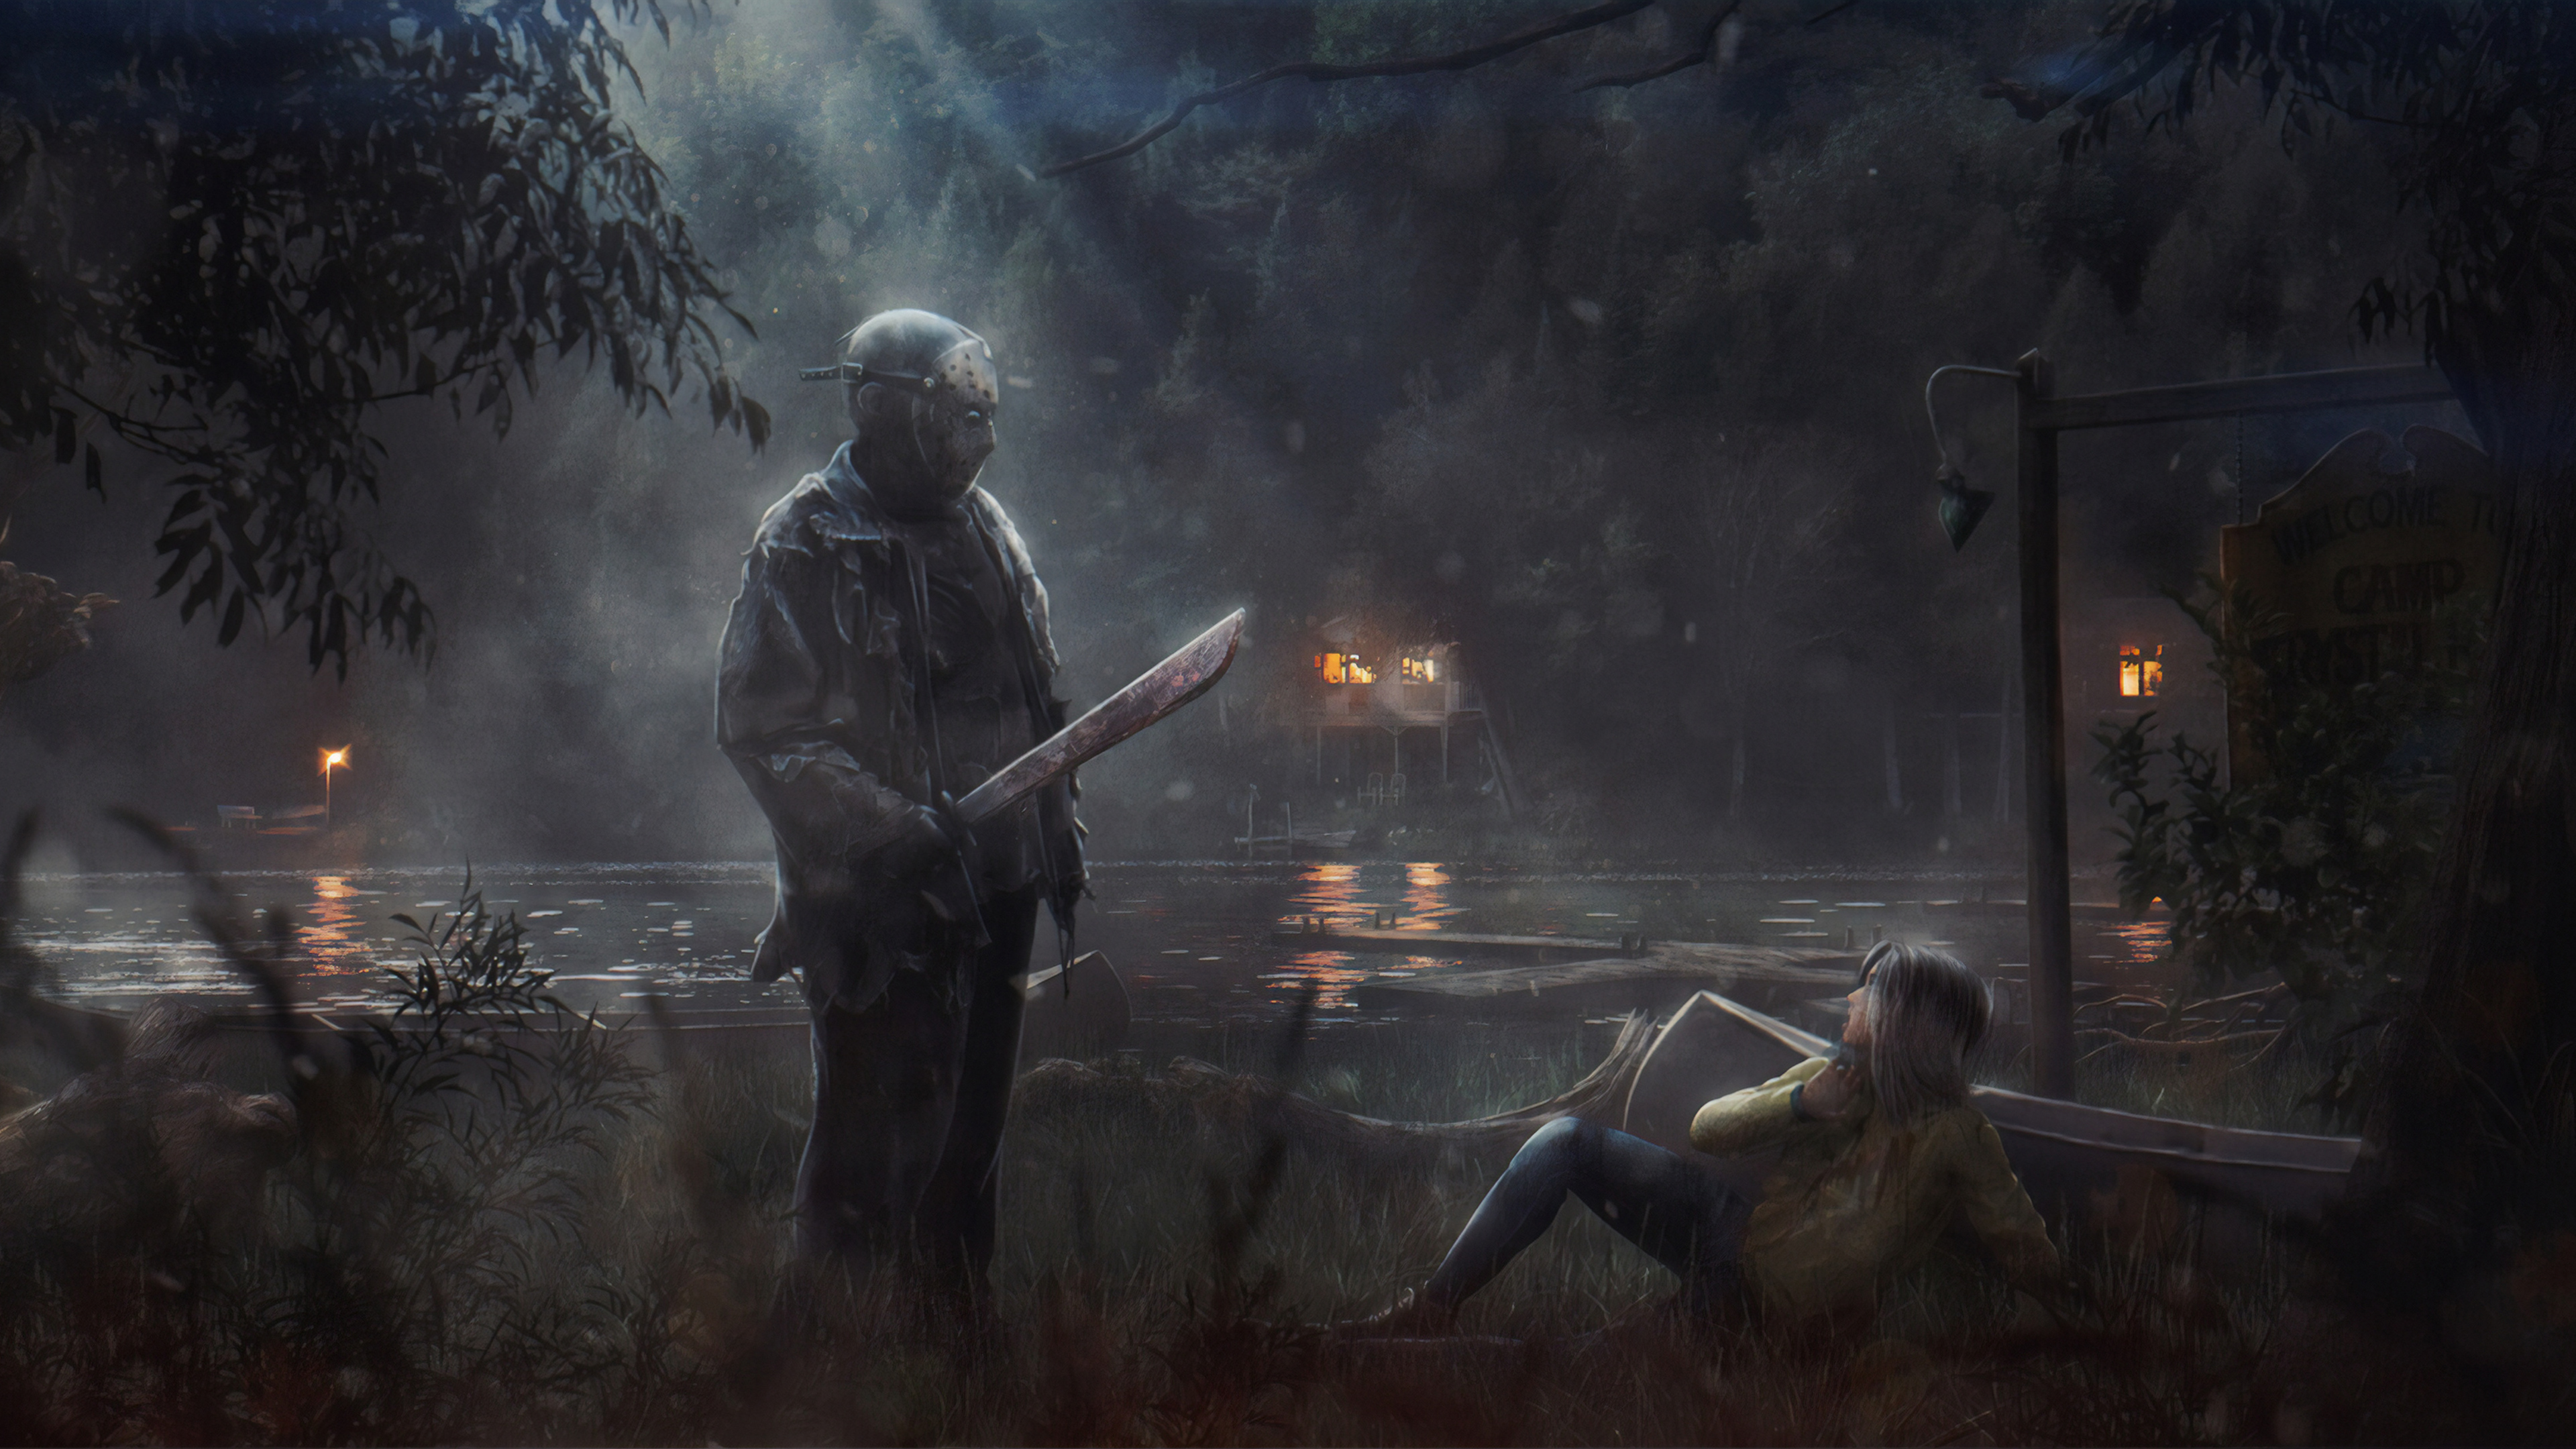 Wallpaper 4k Friday The 13th Game 2019 Games Wallpapers 4k